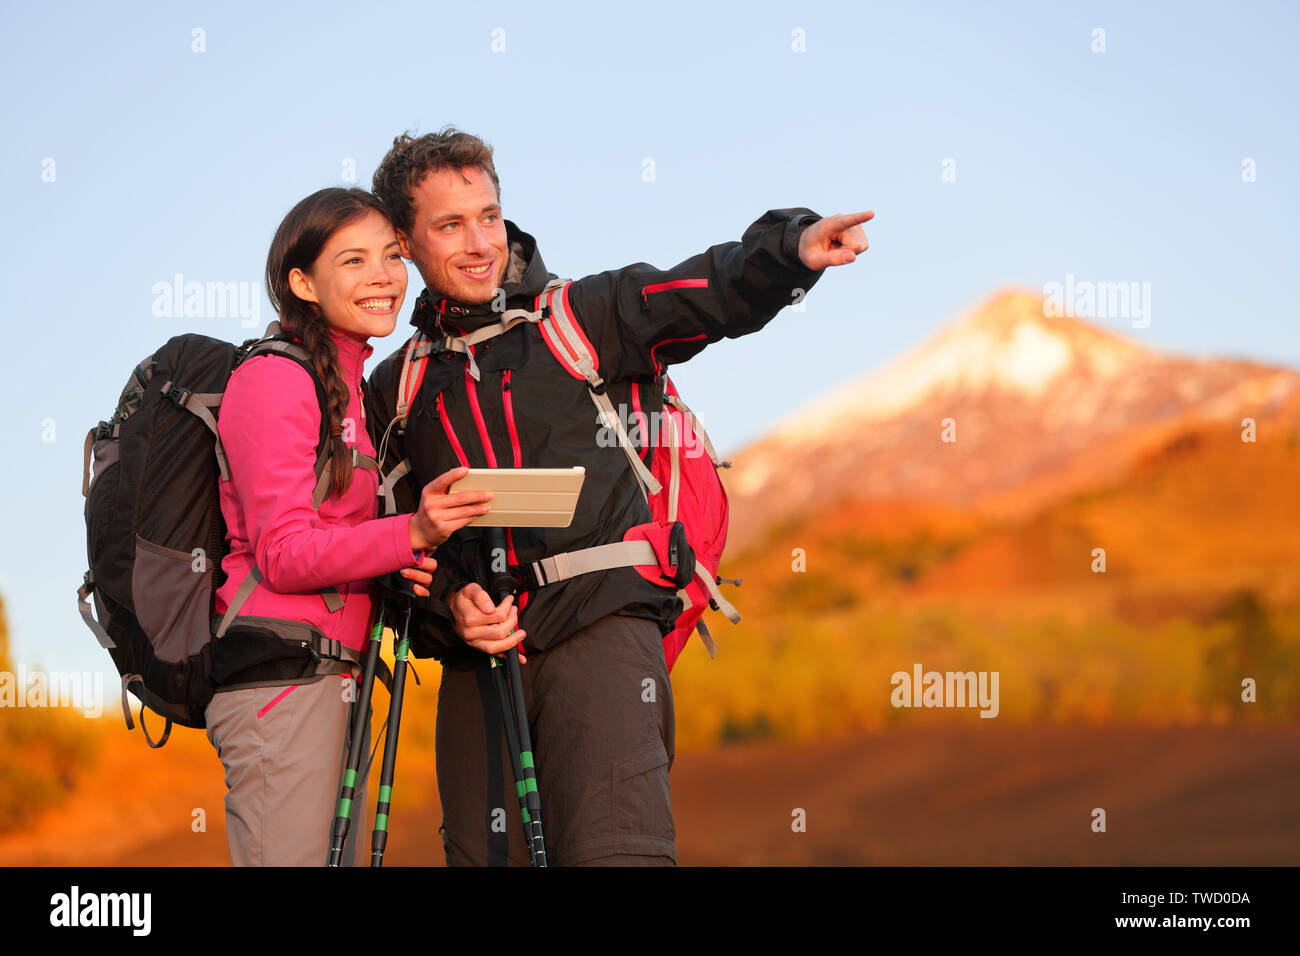 Volcano Map Stock Photos & Volcano Map Stock Images - Page 2 - Alamy